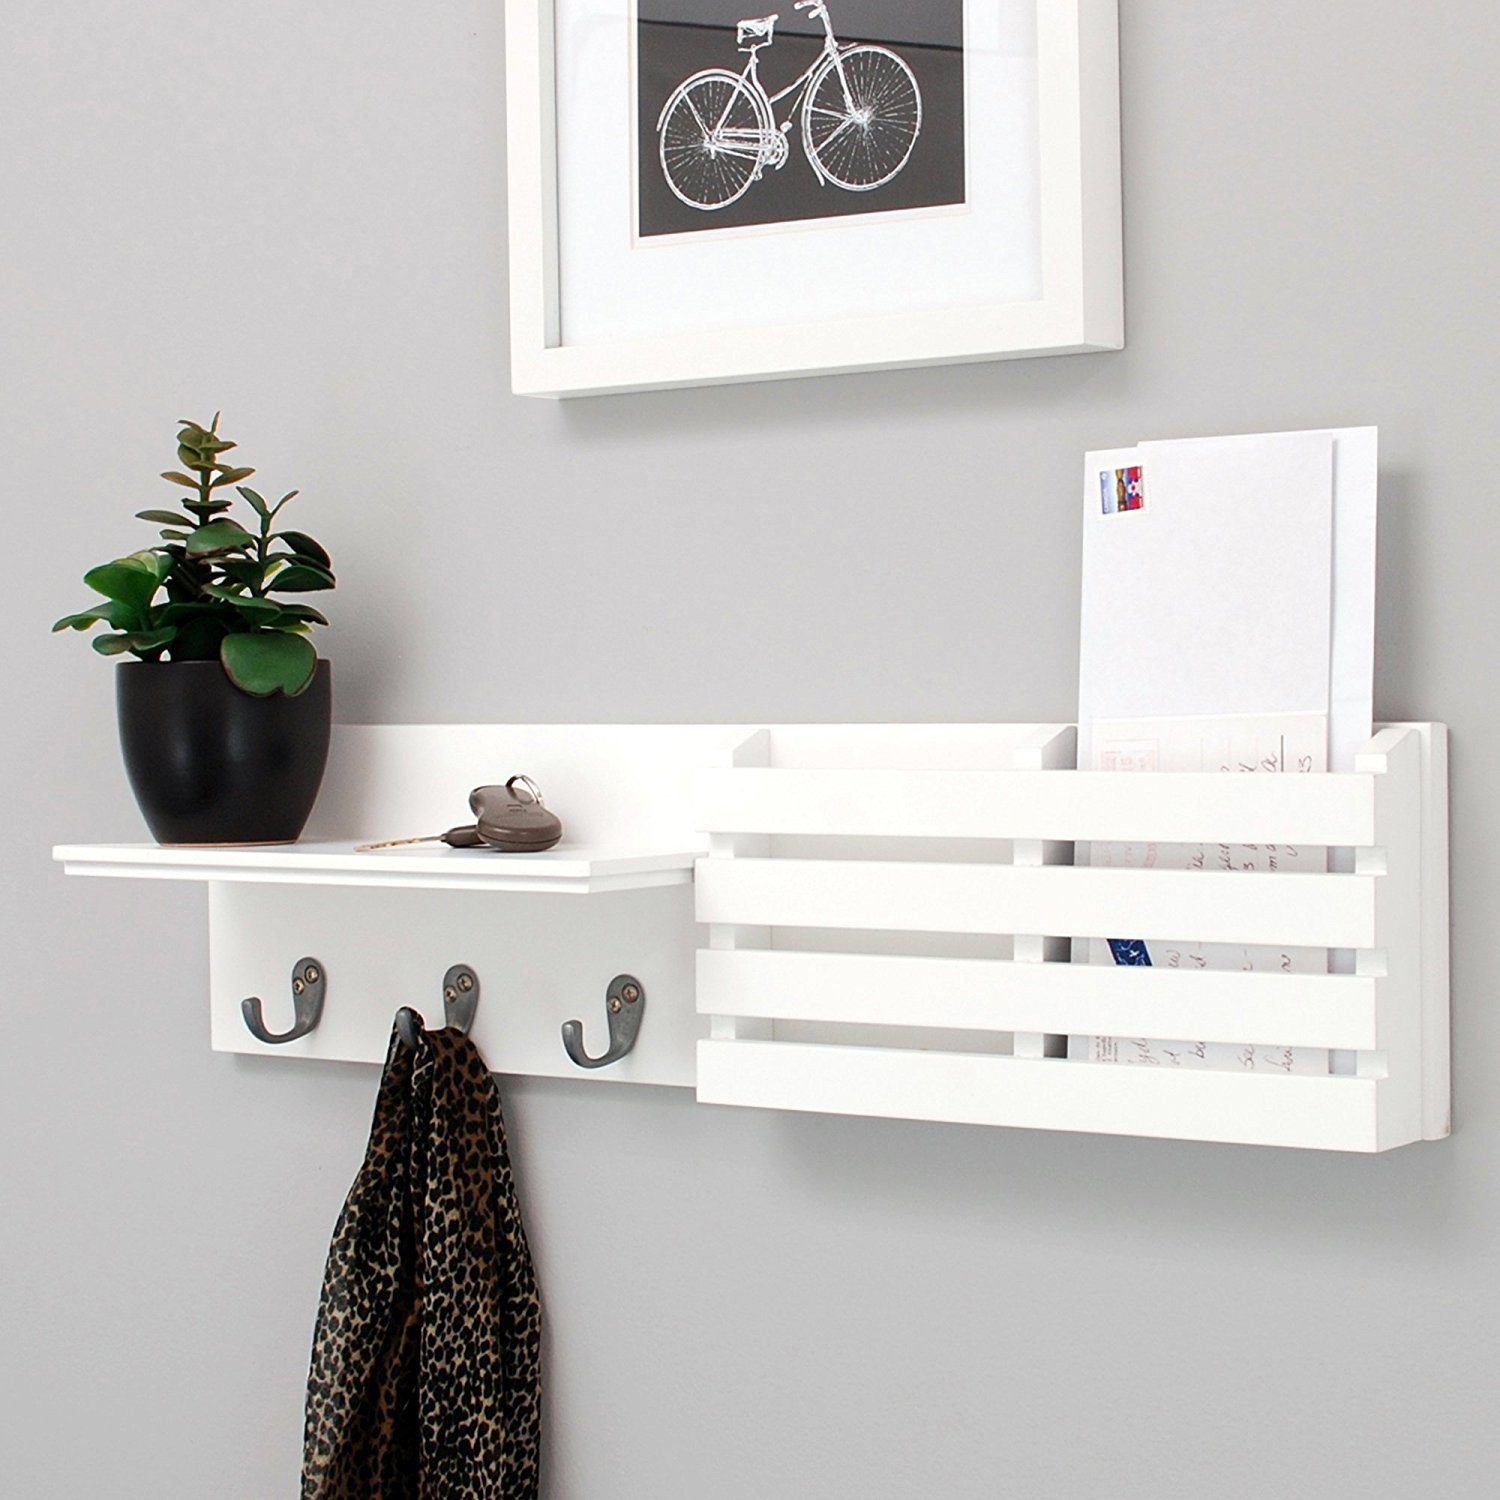 Mail Holder and Book Coat Key Rack Wall Shelf with 3 Hooks, Wall-Mounted Display Storage Ledge, Entry Living Room, 24'' x 6'', White